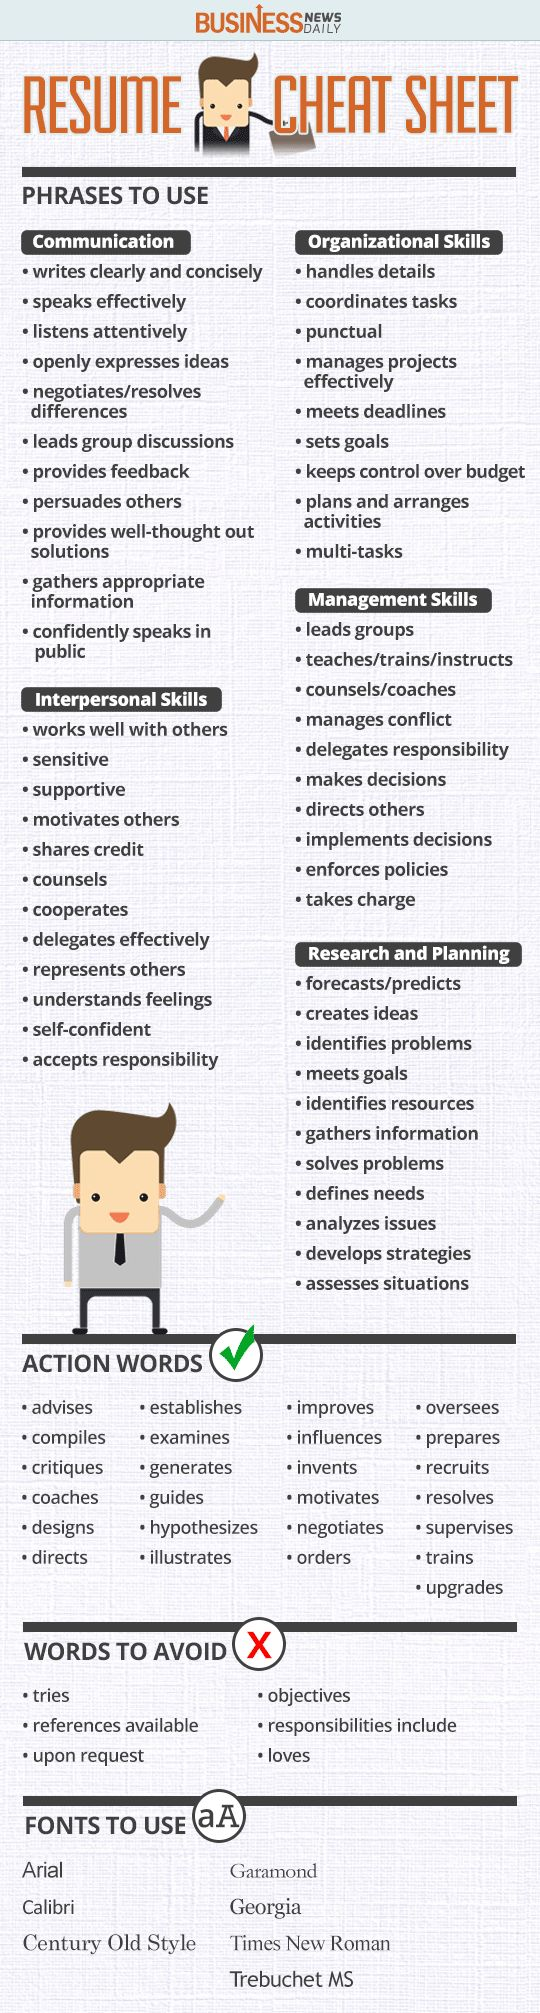 Opposenewapstandardsus  Pleasing  Ideas About Resume On Pinterest  Cv Format Resume Cv And  With Extraordinary Resume Cheat Sheet Infographic Andrews Almost Done With A Complete Unit On Employment Which With Agreeable Communication Skills Resume Also Examples Of Resume Objectives In Addition Teacher Resumes And Graduate School Resume As Well As Substitute Teacher Resume Additionally Data Entry Resume From Pinterestcom With Opposenewapstandardsus  Extraordinary  Ideas About Resume On Pinterest  Cv Format Resume Cv And  With Agreeable Resume Cheat Sheet Infographic Andrews Almost Done With A Complete Unit On Employment Which And Pleasing Communication Skills Resume Also Examples Of Resume Objectives In Addition Teacher Resumes From Pinterestcom